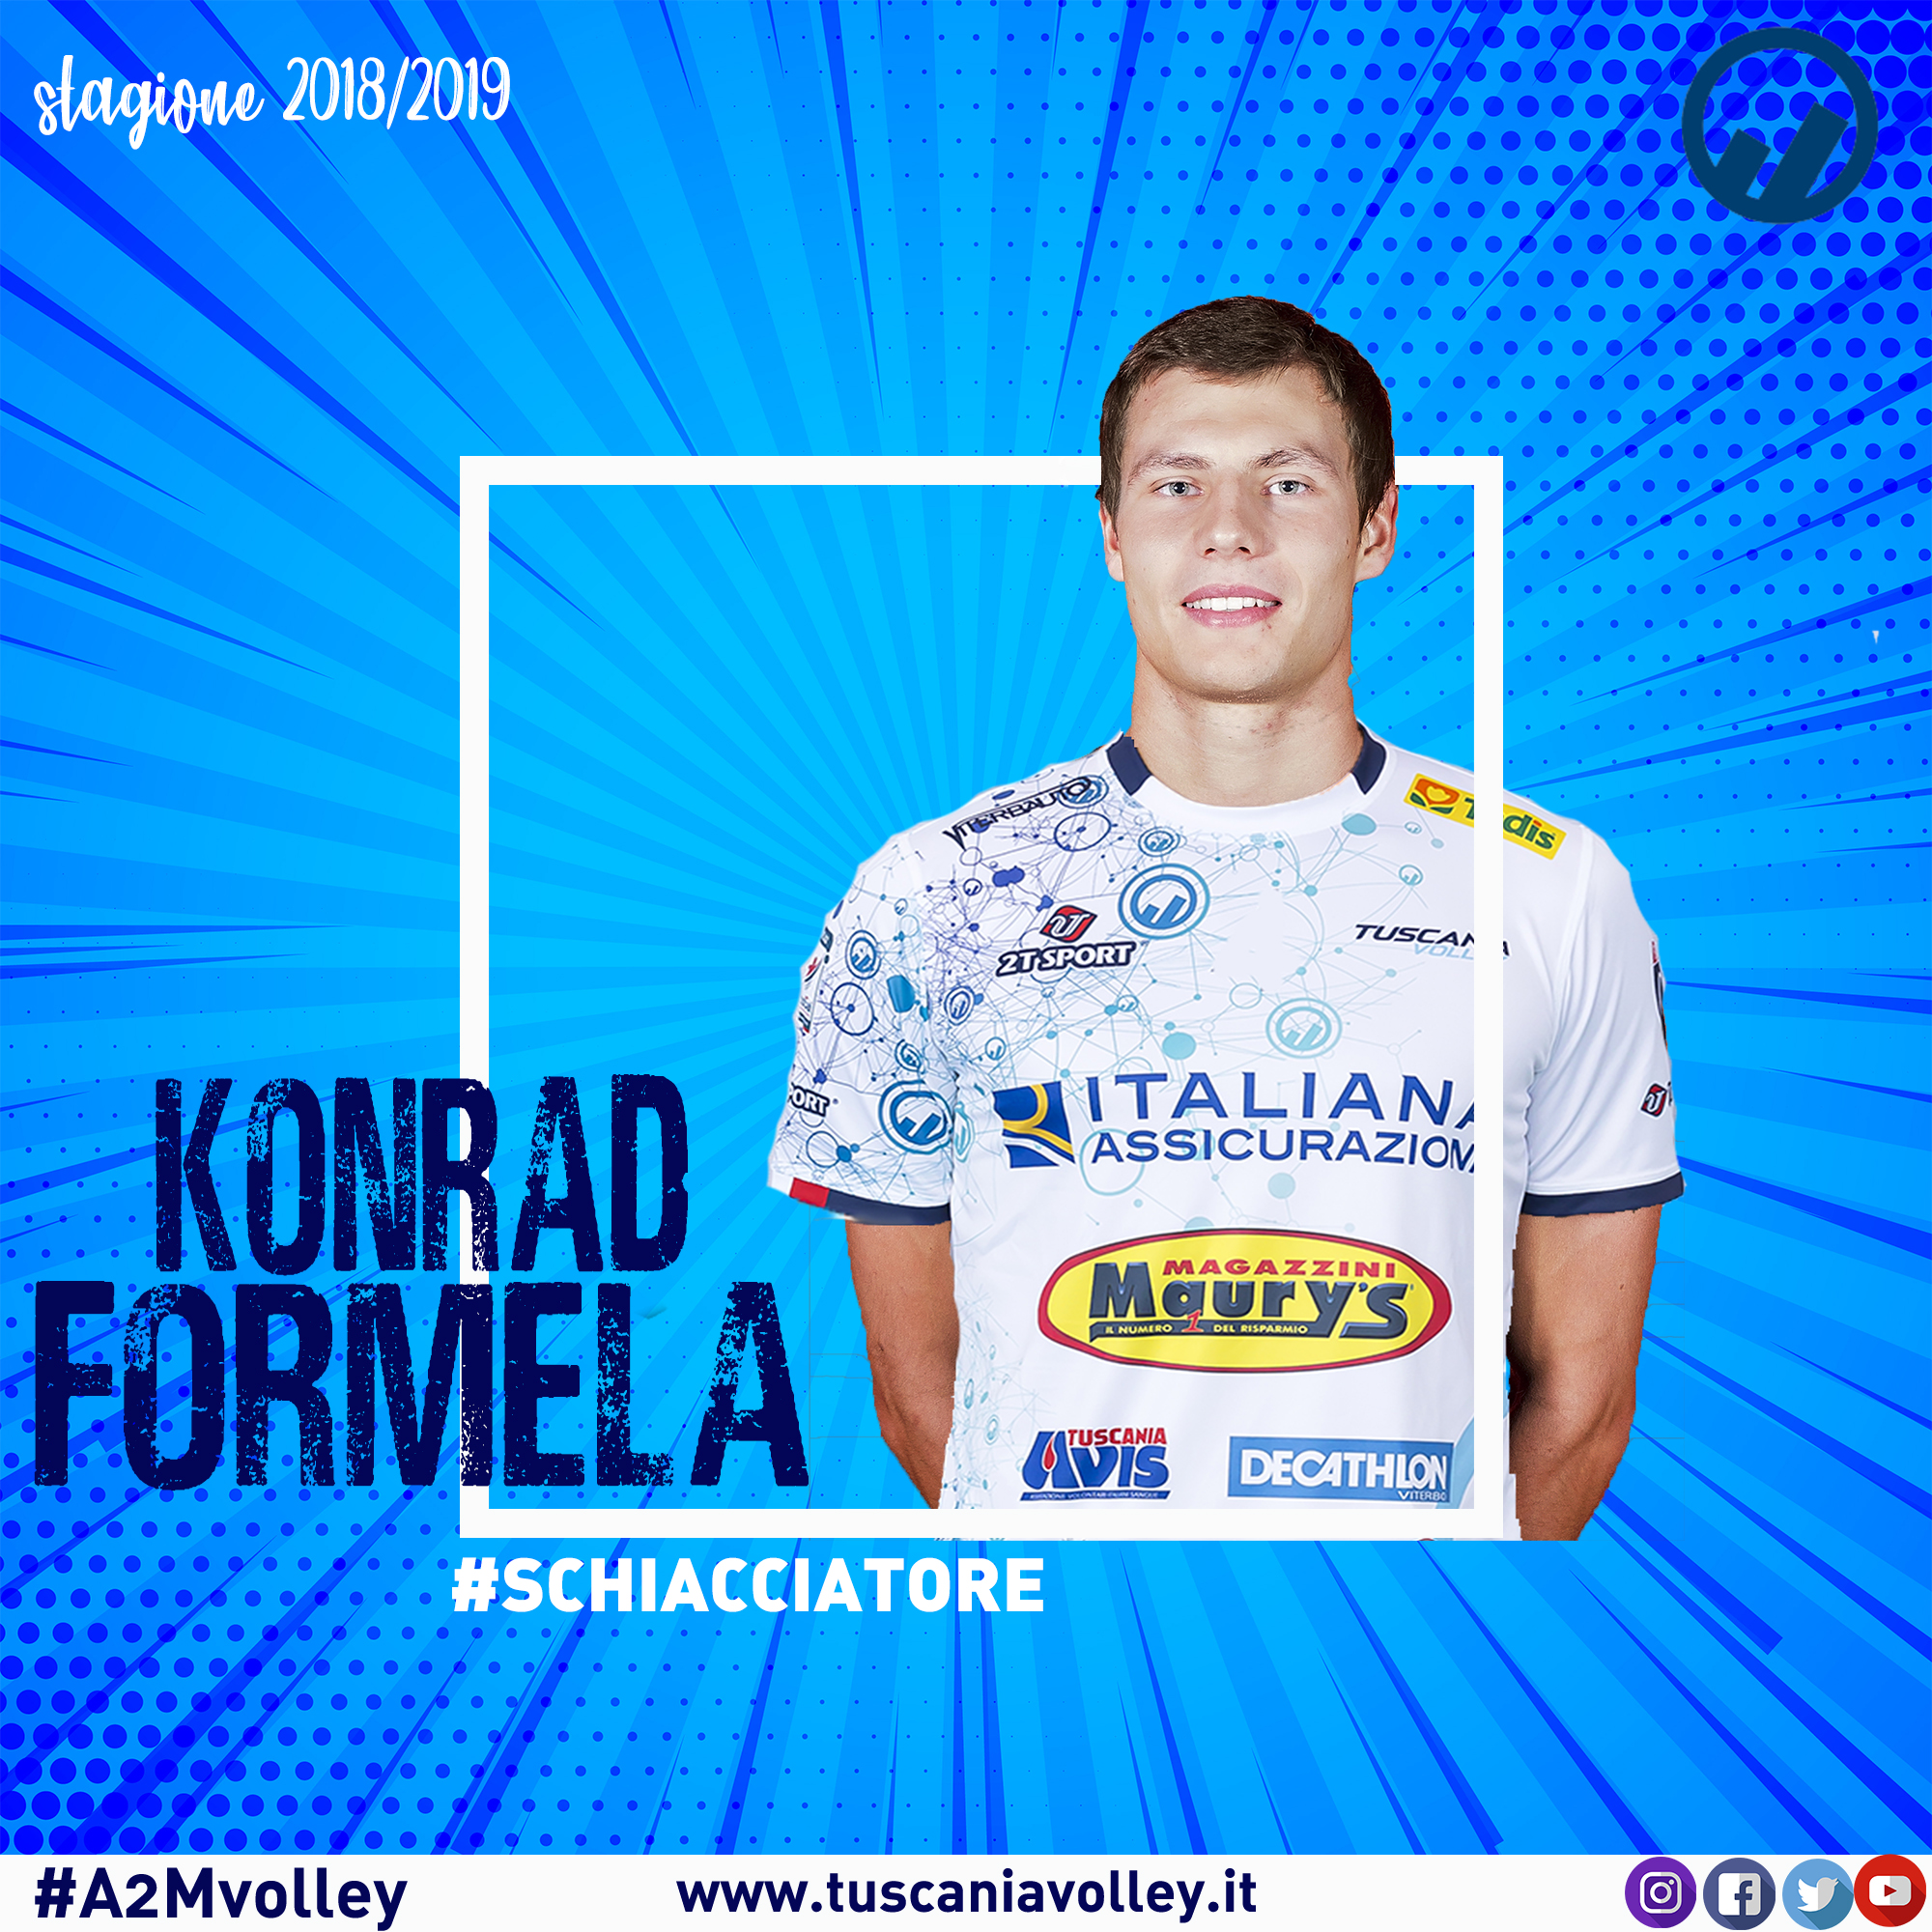 Tuscania Volley, from Poland the outside hitter Kondrad Formela